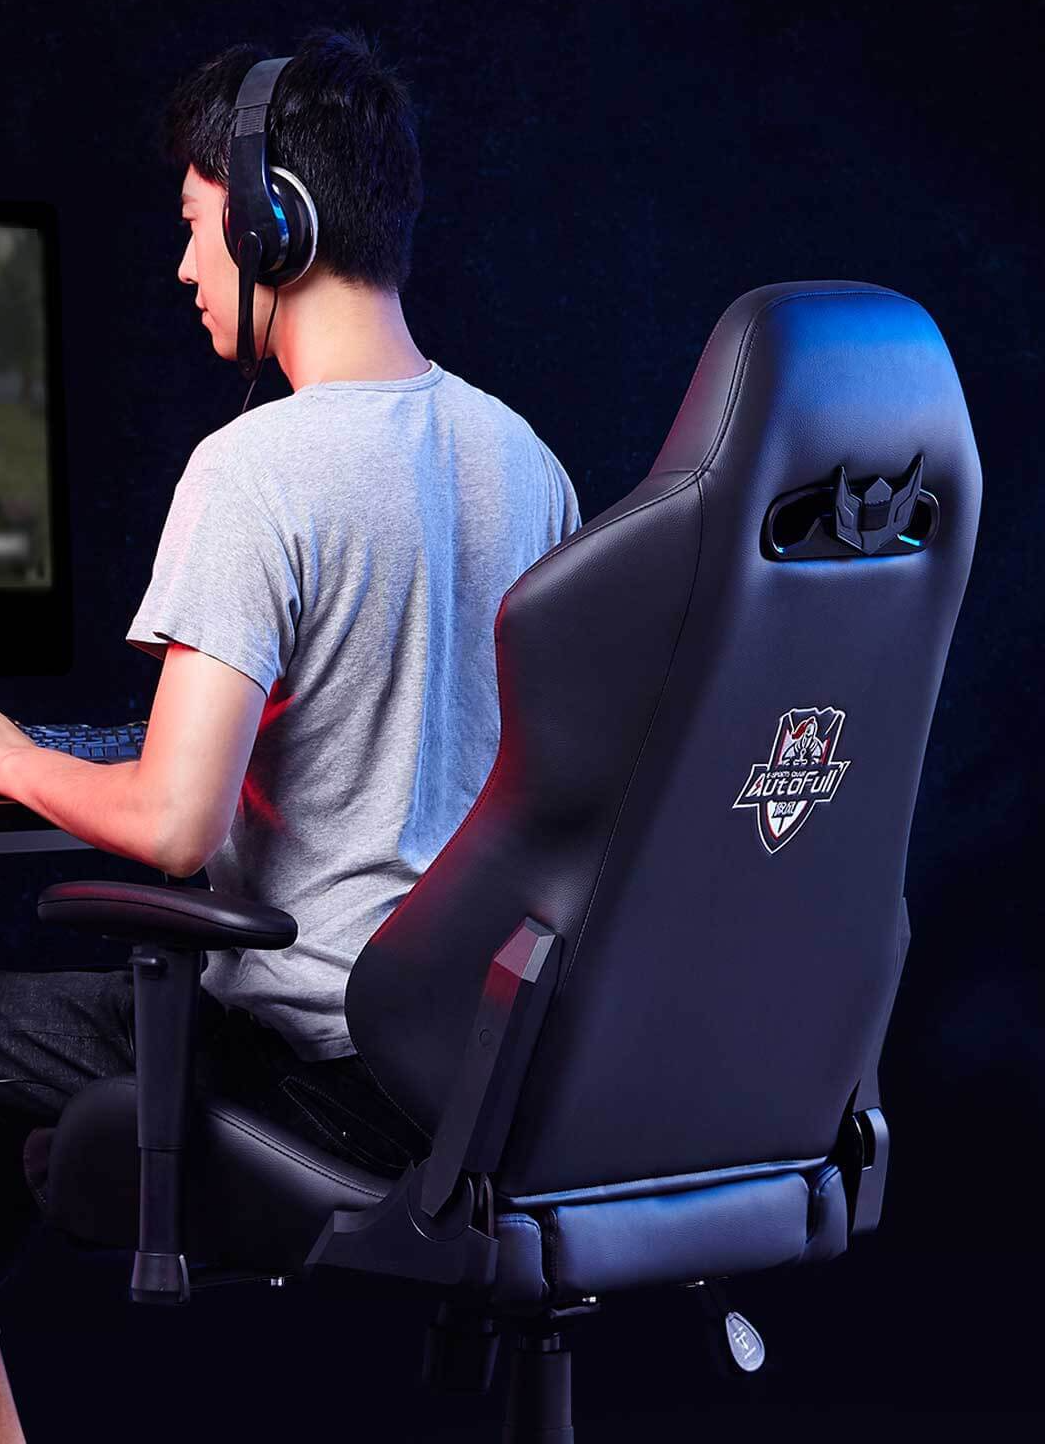 Xiaomi Mijia Autofull gaming chair